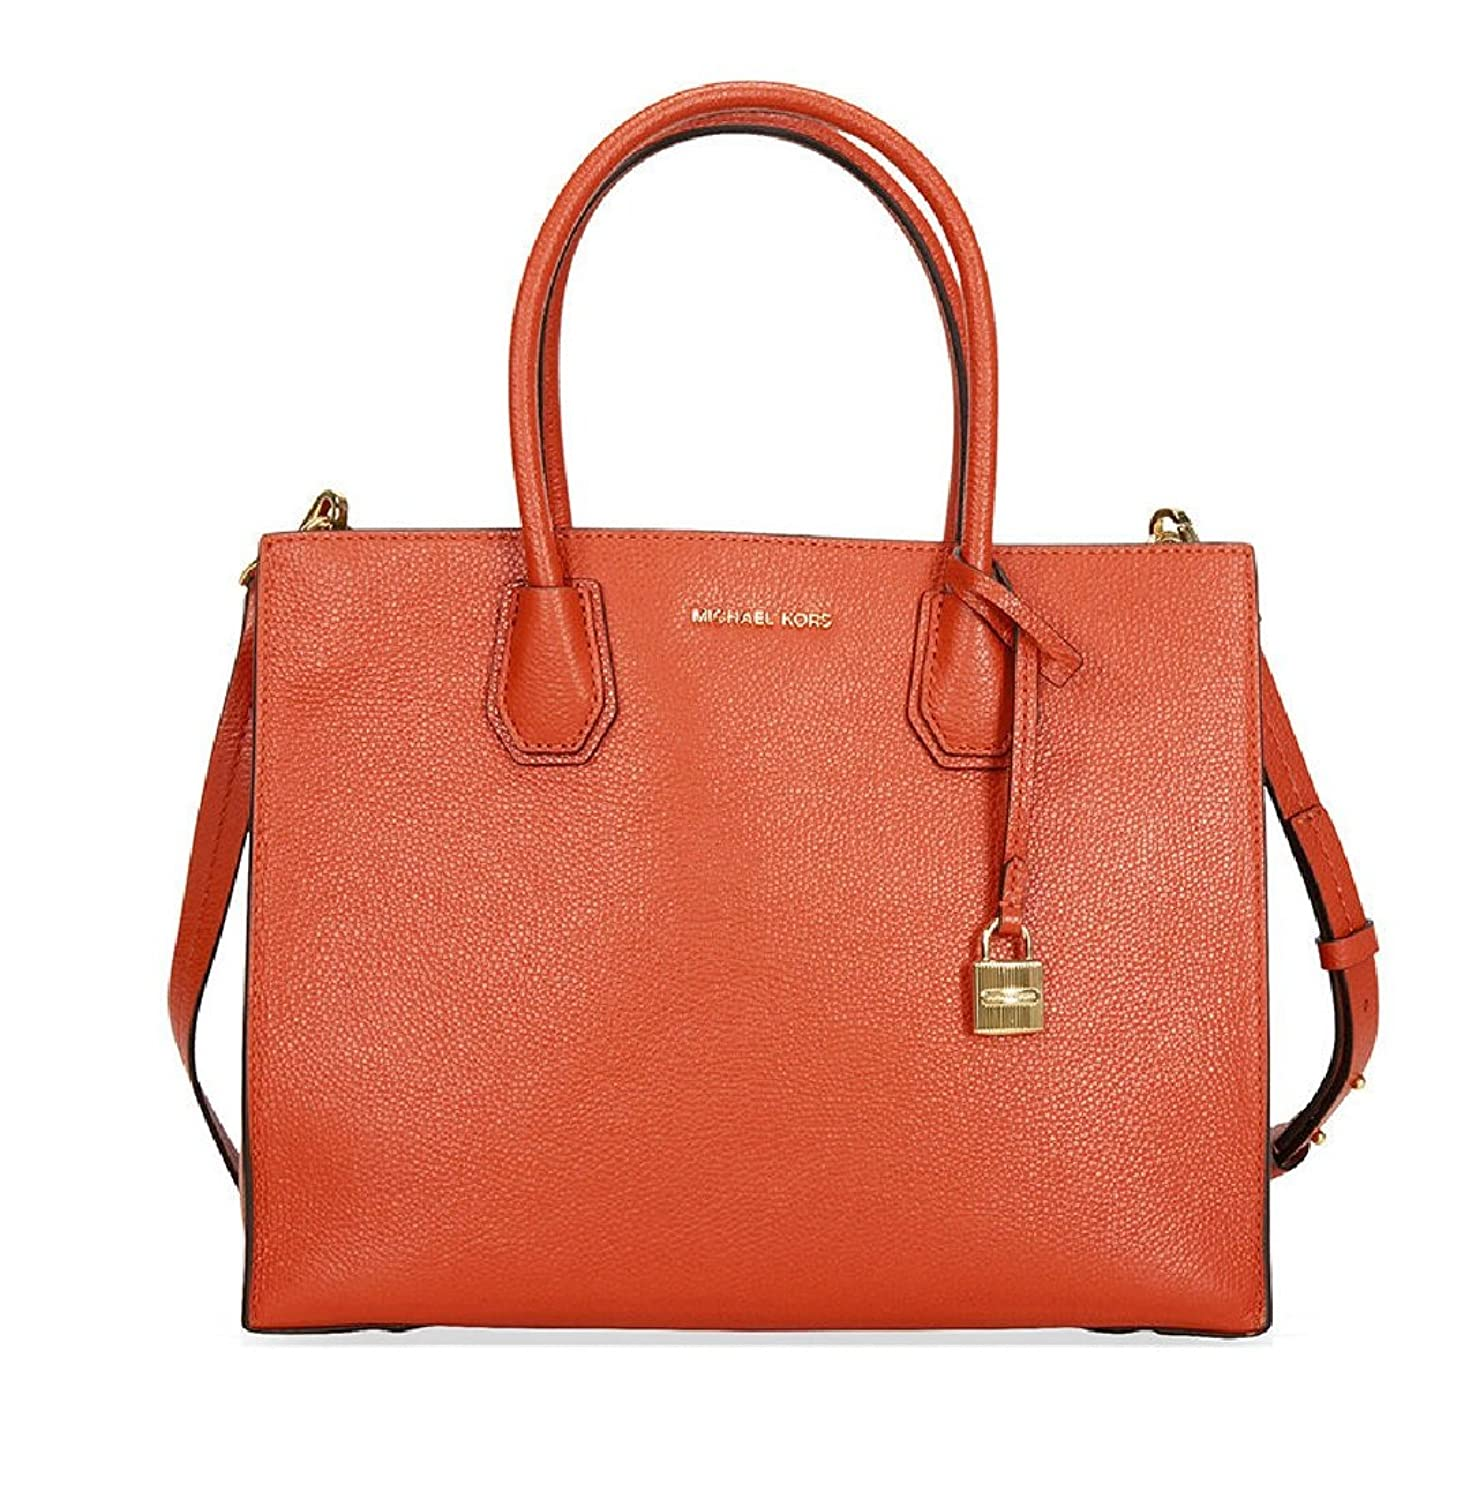 (マイケルコース)MICHAEL KORS Studio Leather Large Mercer Convertible Tote Orange Handbag マーサーラージトート オレンジ [並行輸入品] B06ZYLKMHK